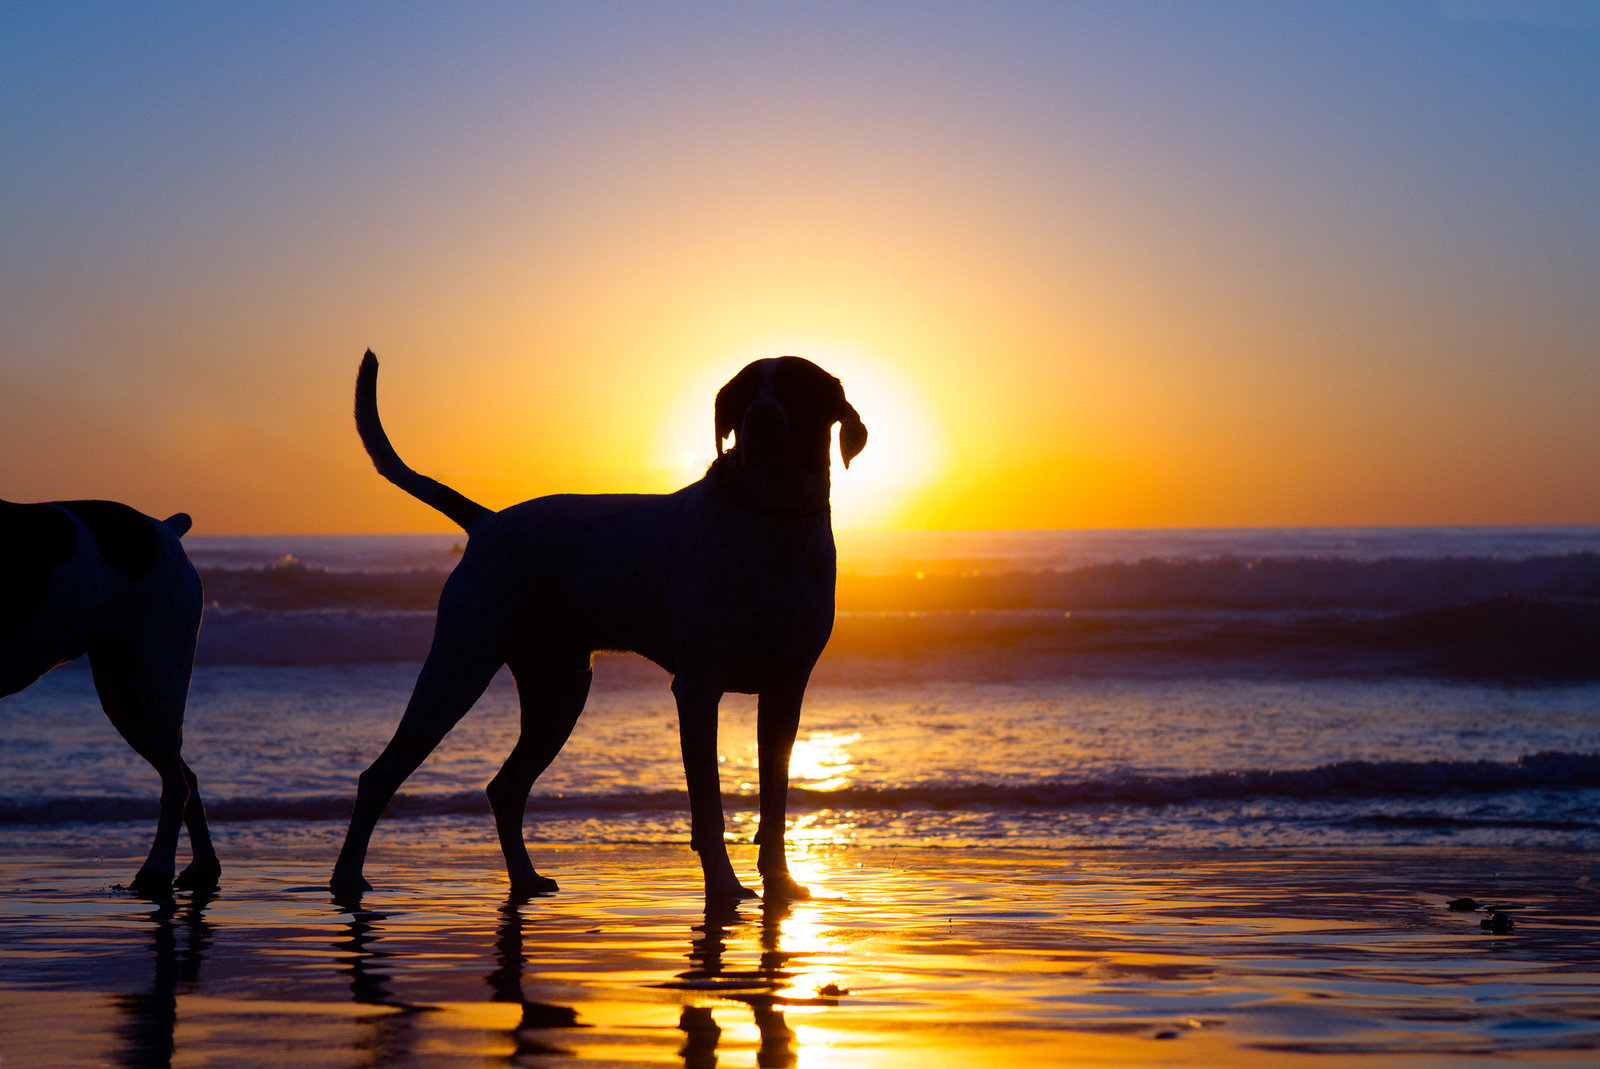 Sunset silhouette photo of a dog on the beach